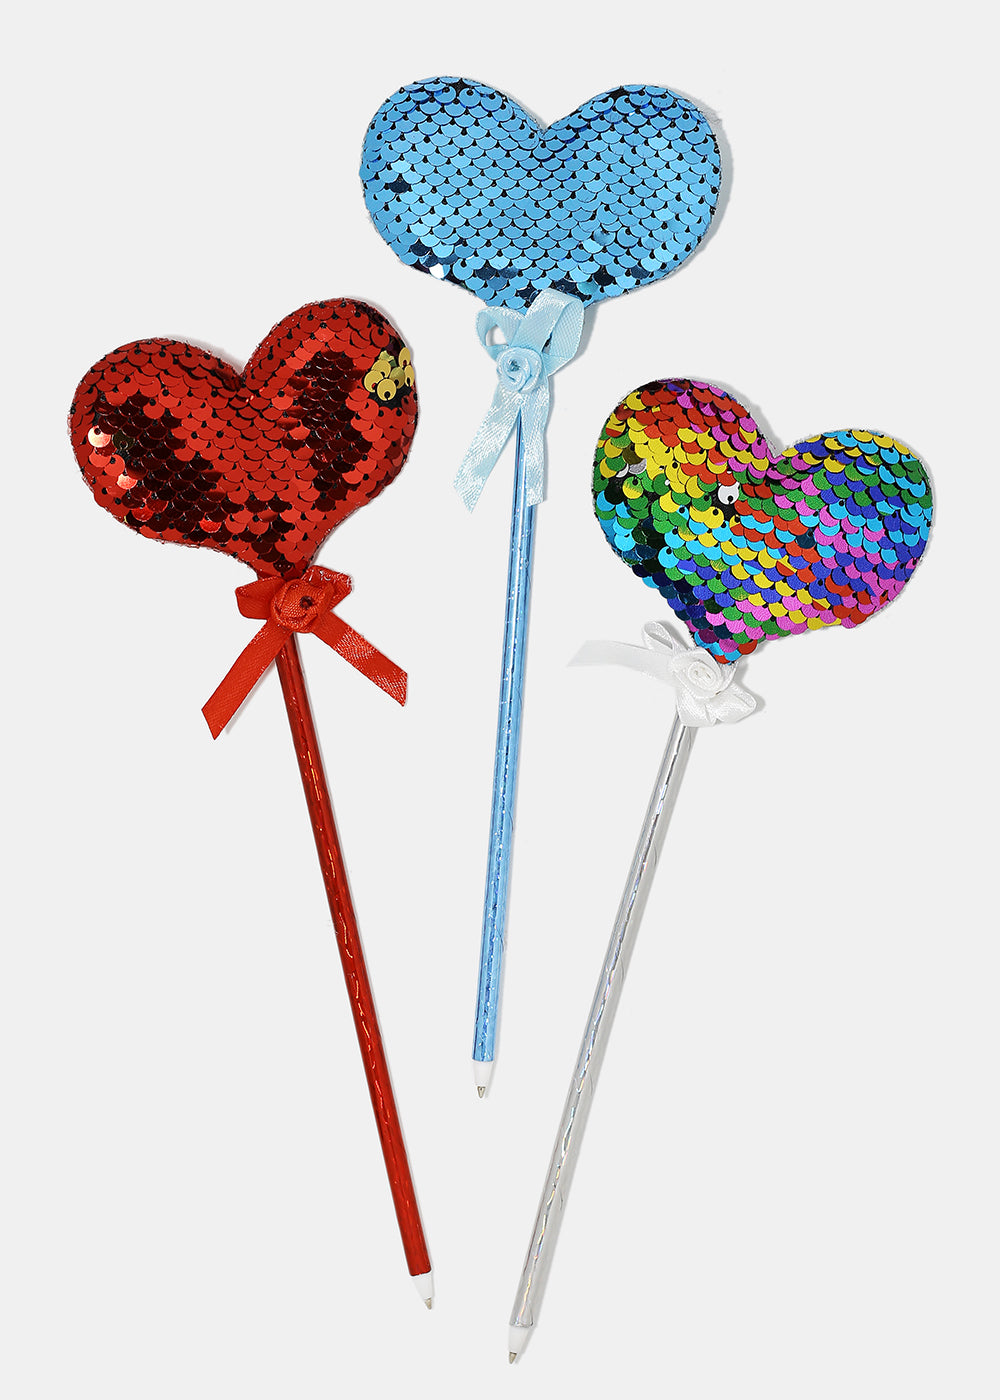 Sequin Heart & Butterfly Pens